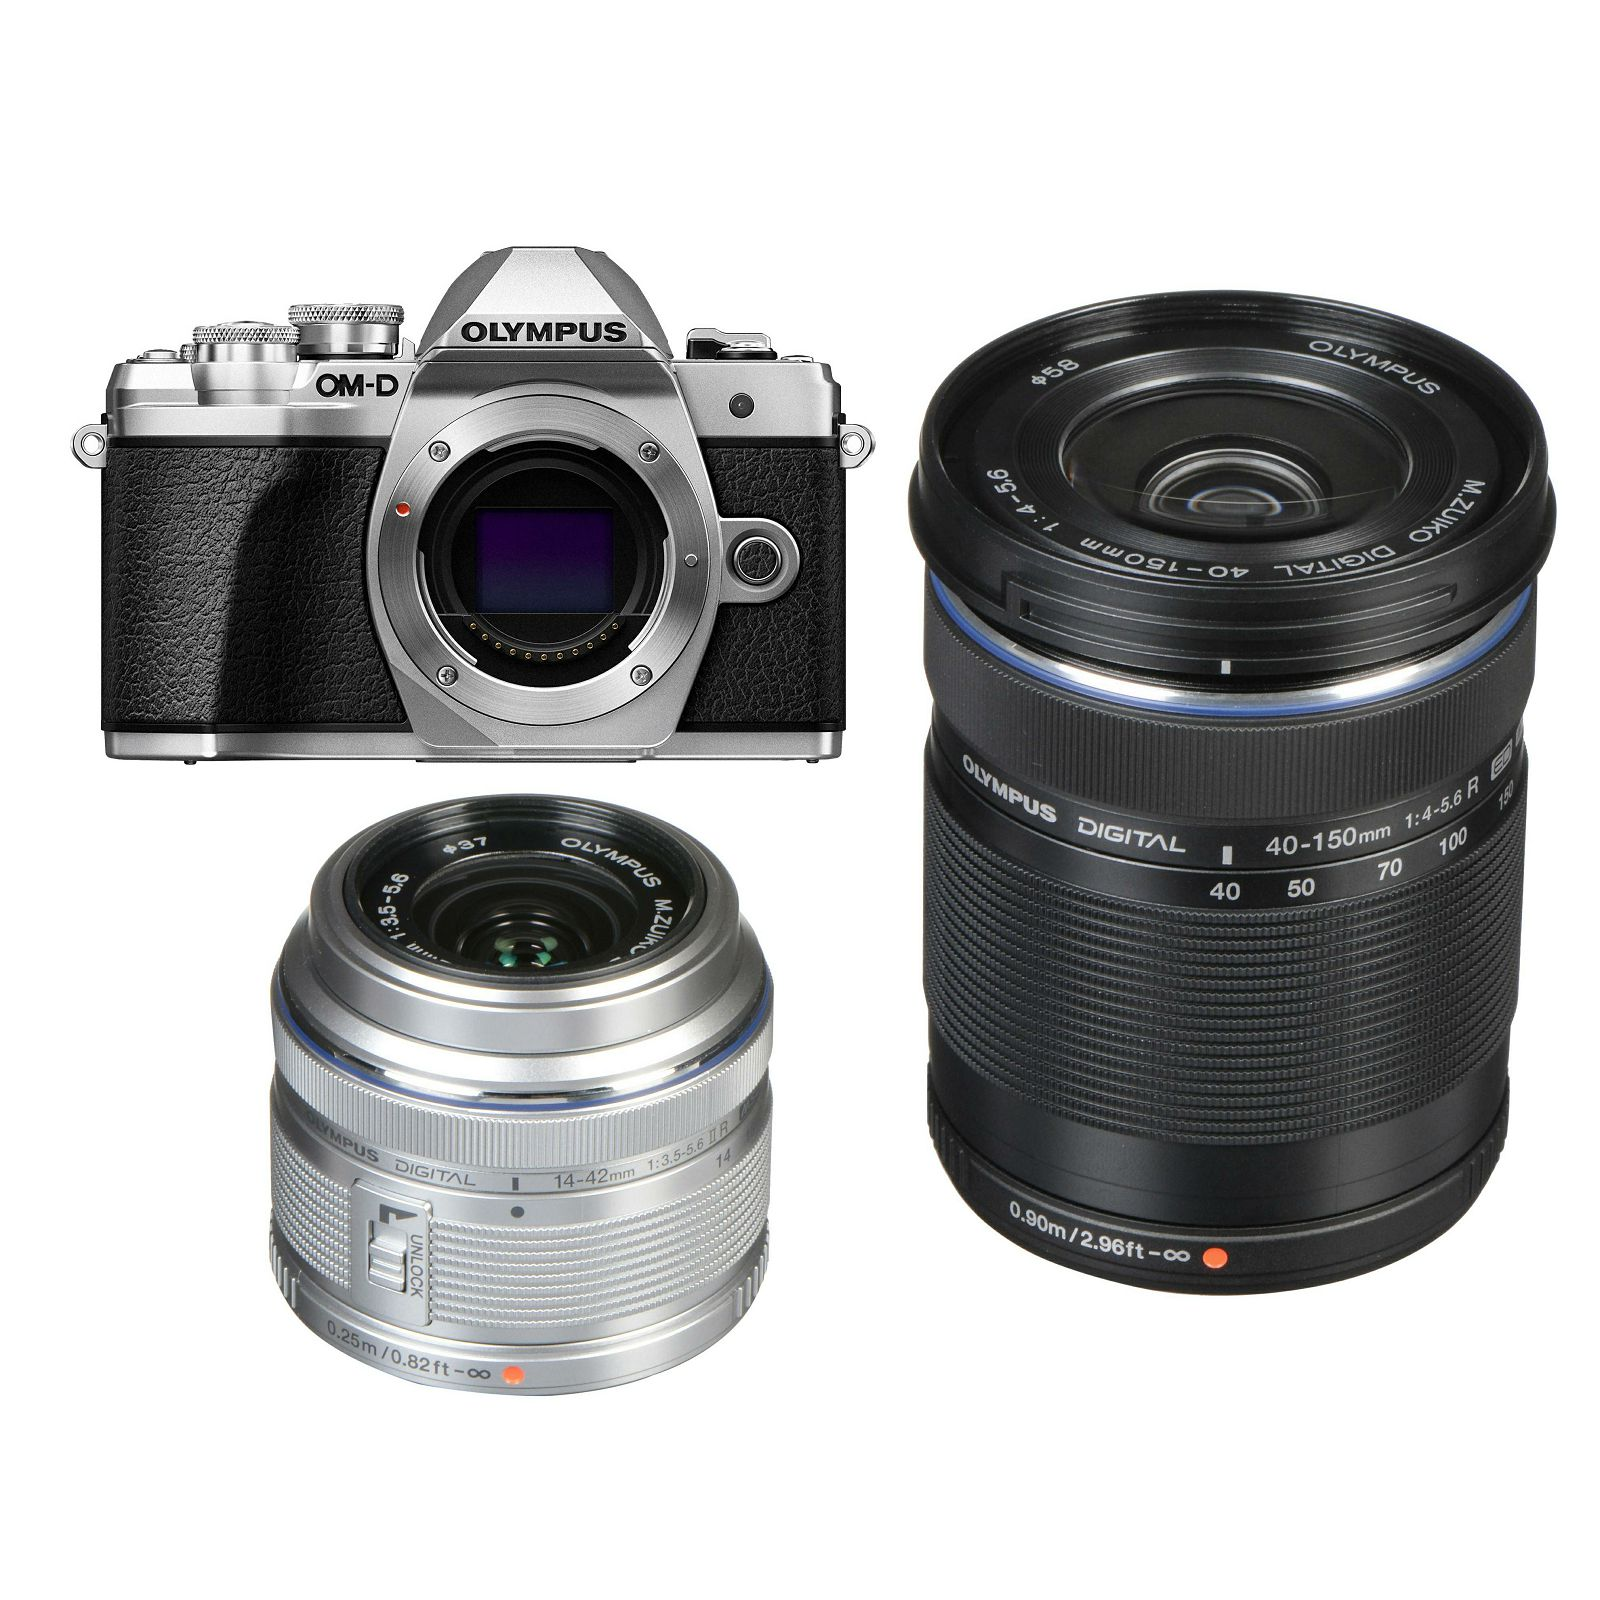 Olympus E-M10 III + 14-42mm + 40-150mm Double Zoom KIT Silver srebreni digitalni fotoaparat s objektivima EZ-M1442 II R i EZ-M4015 R Mirrorless MFT Micro Four Thirds Digital Camera (V207071SE010)